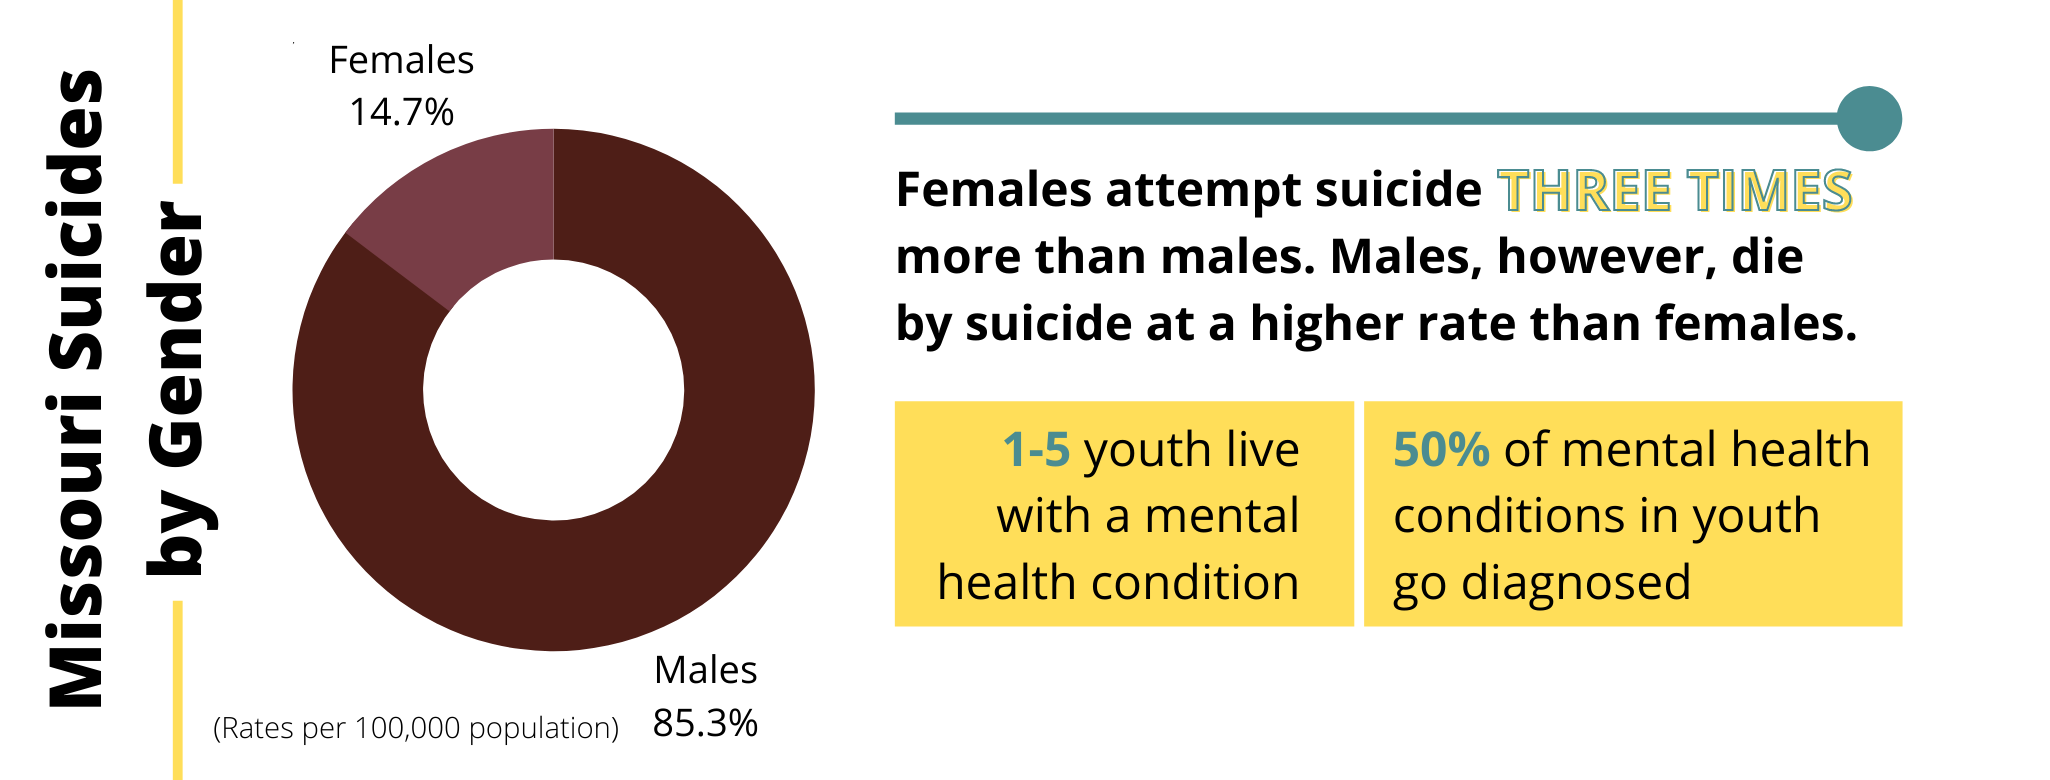 MISSOURI SUICIDE FACTS AND FIGURES EDITED (1)